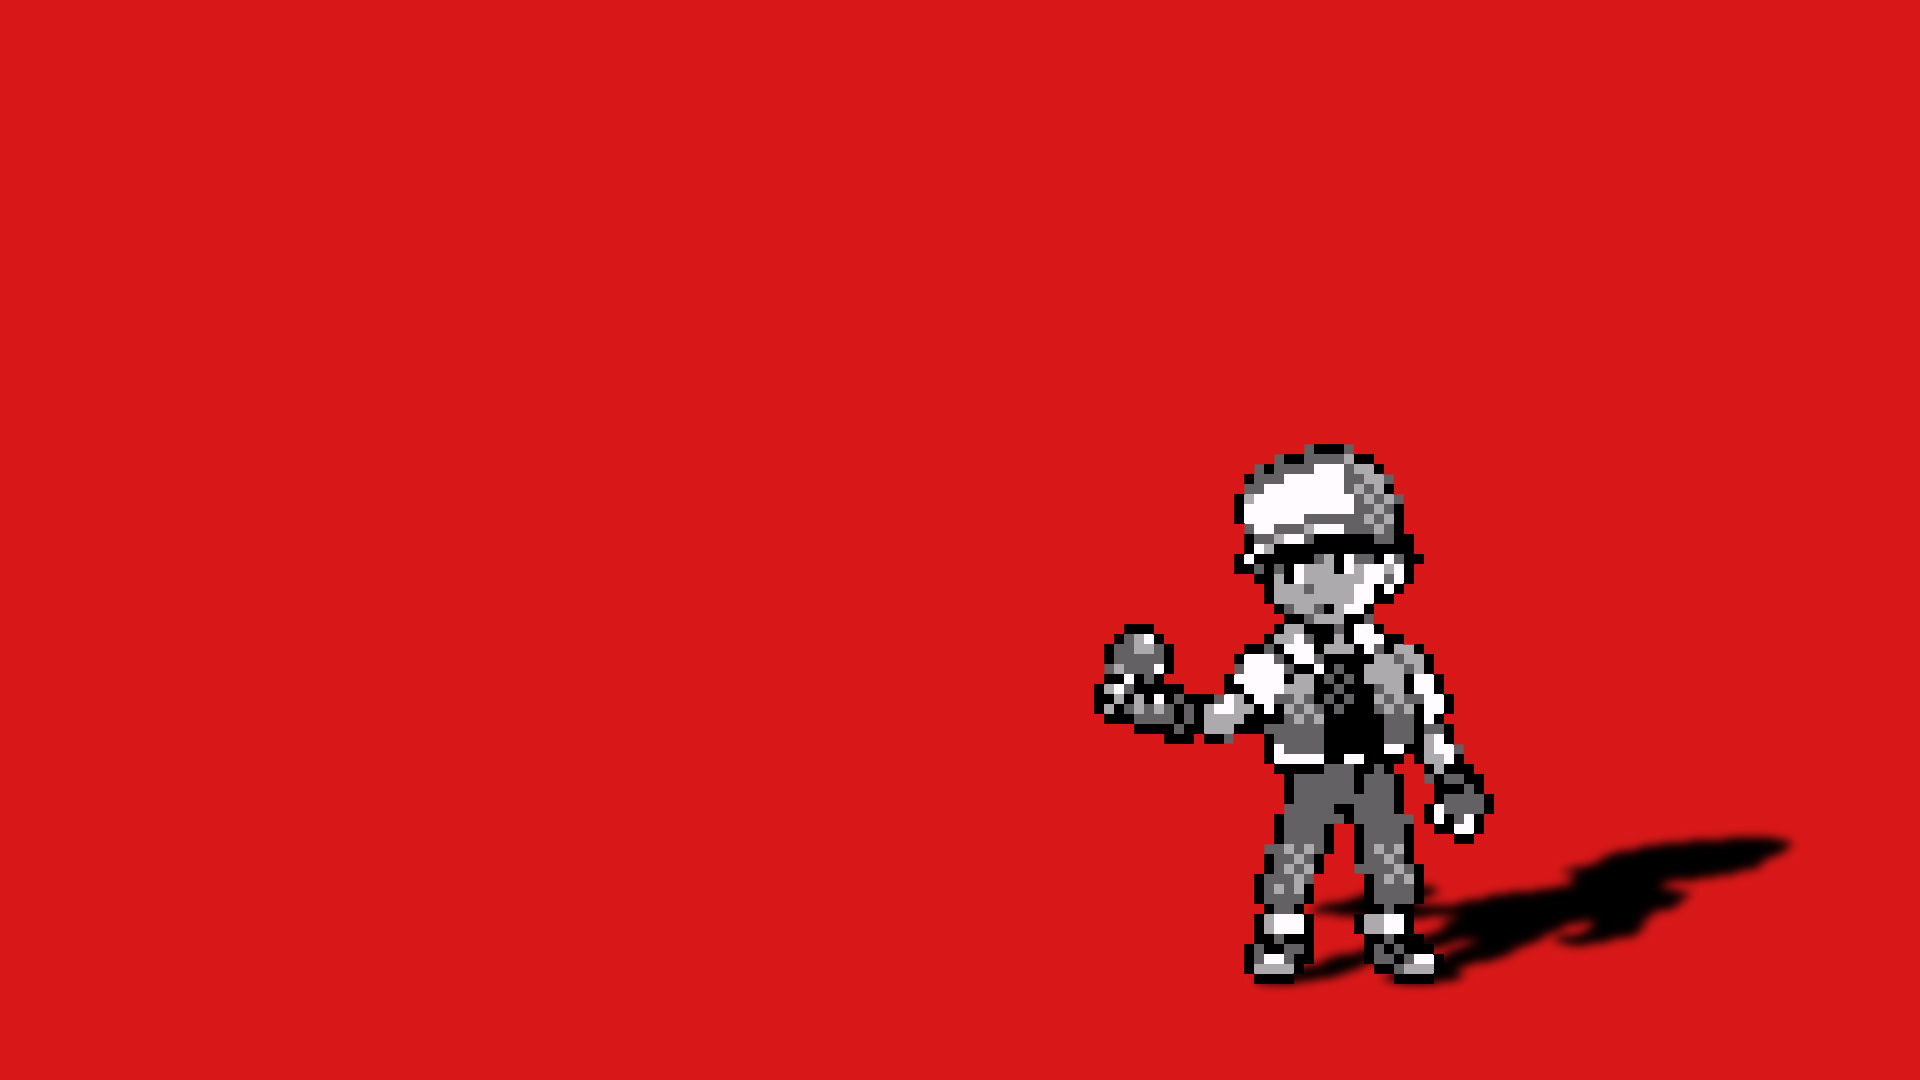 Gameboy Iphone X Wallpaper 1 Pokemon Firered Version Hd Wallpapers Background